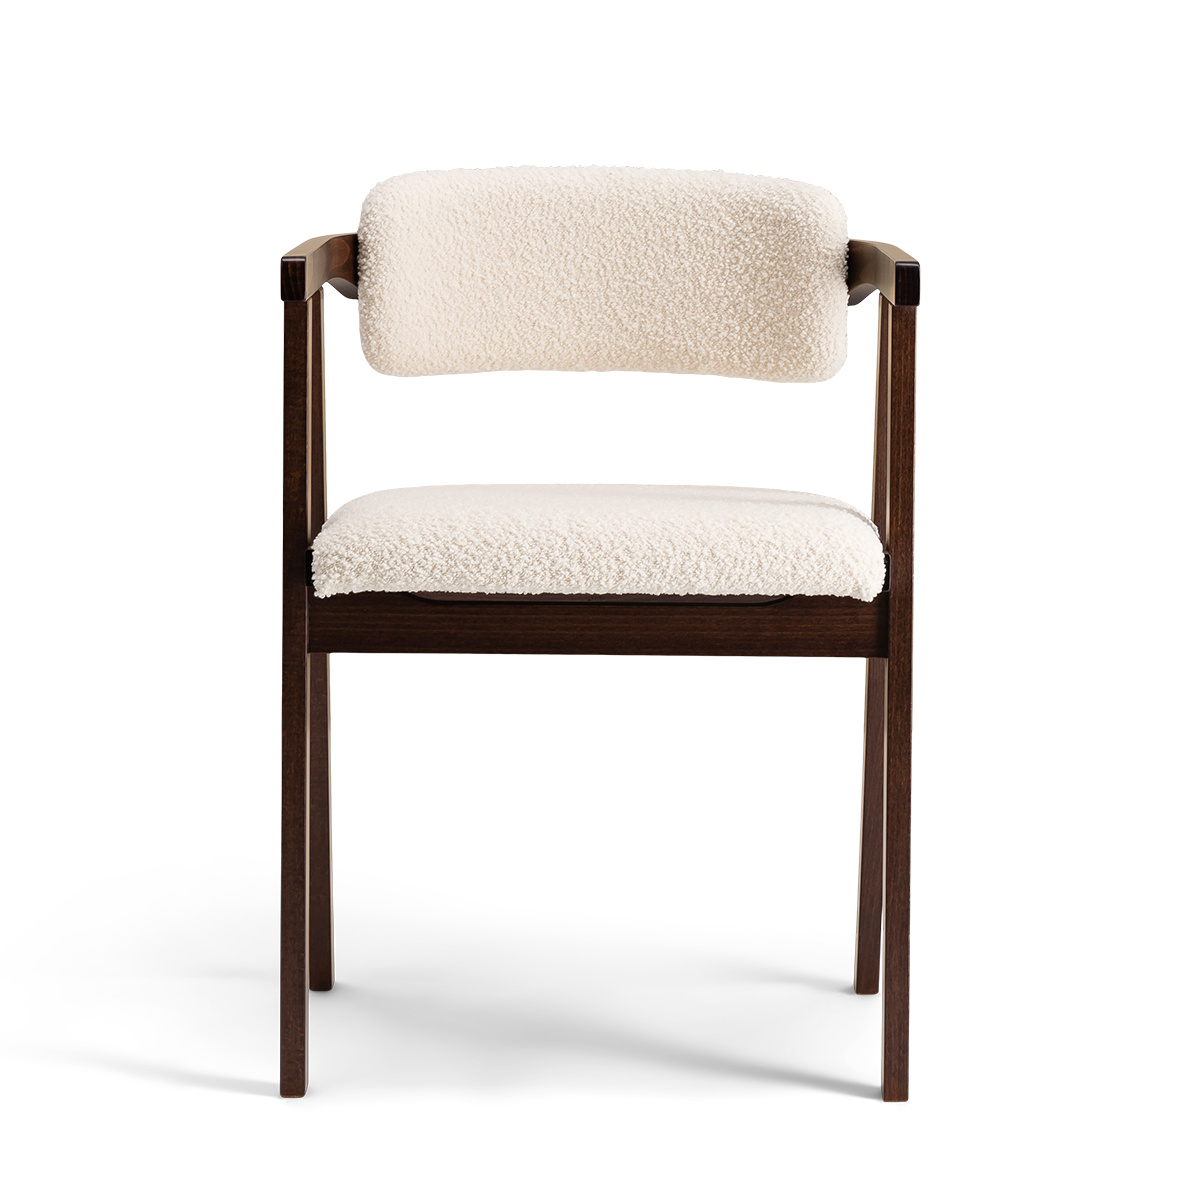 Milano Chair with Brown Wood and Cream White Curly Wool